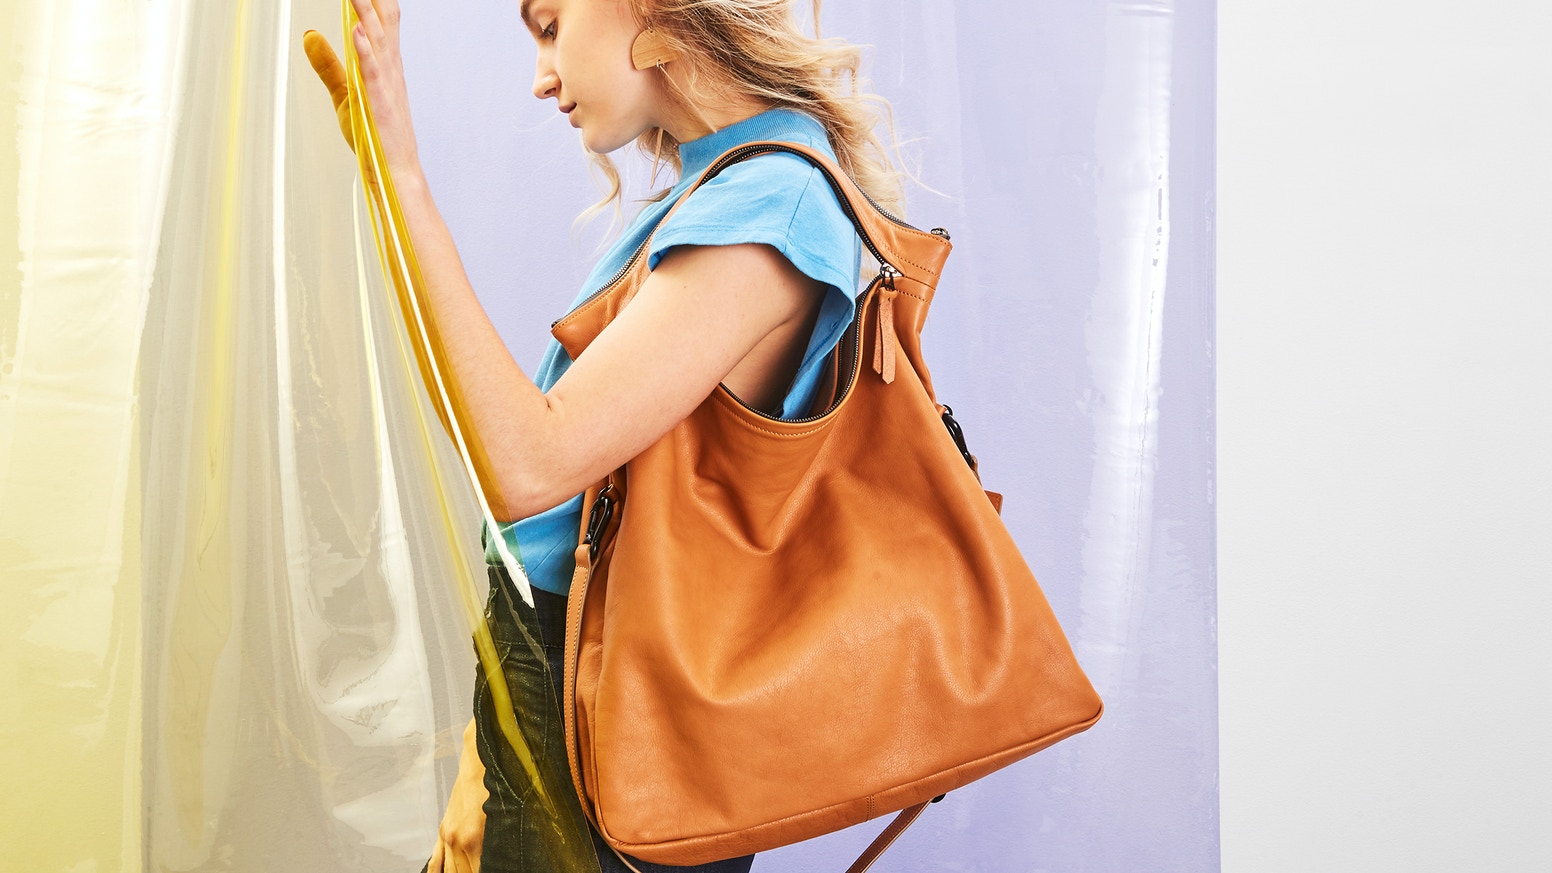 High Quality Leather Handbags That Transform Into Multiple Shapes According To Your Needs